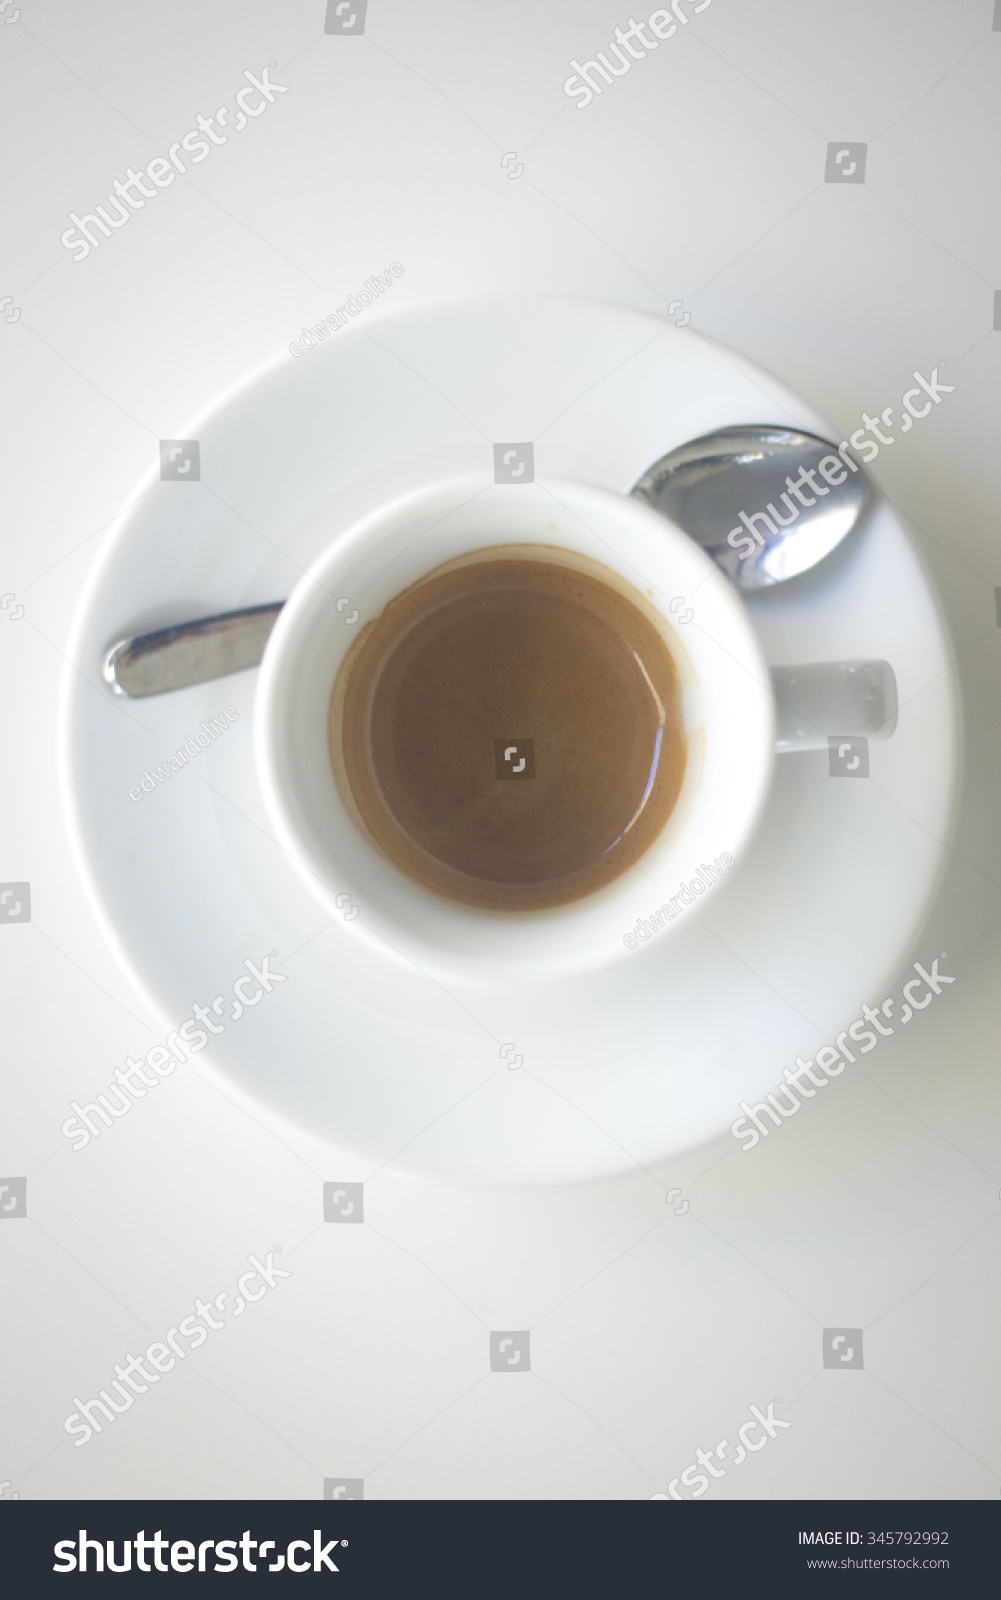 Expresso Café Italian Coffee Expresso Cup Spoon Saucer Stock Photo Edit Now